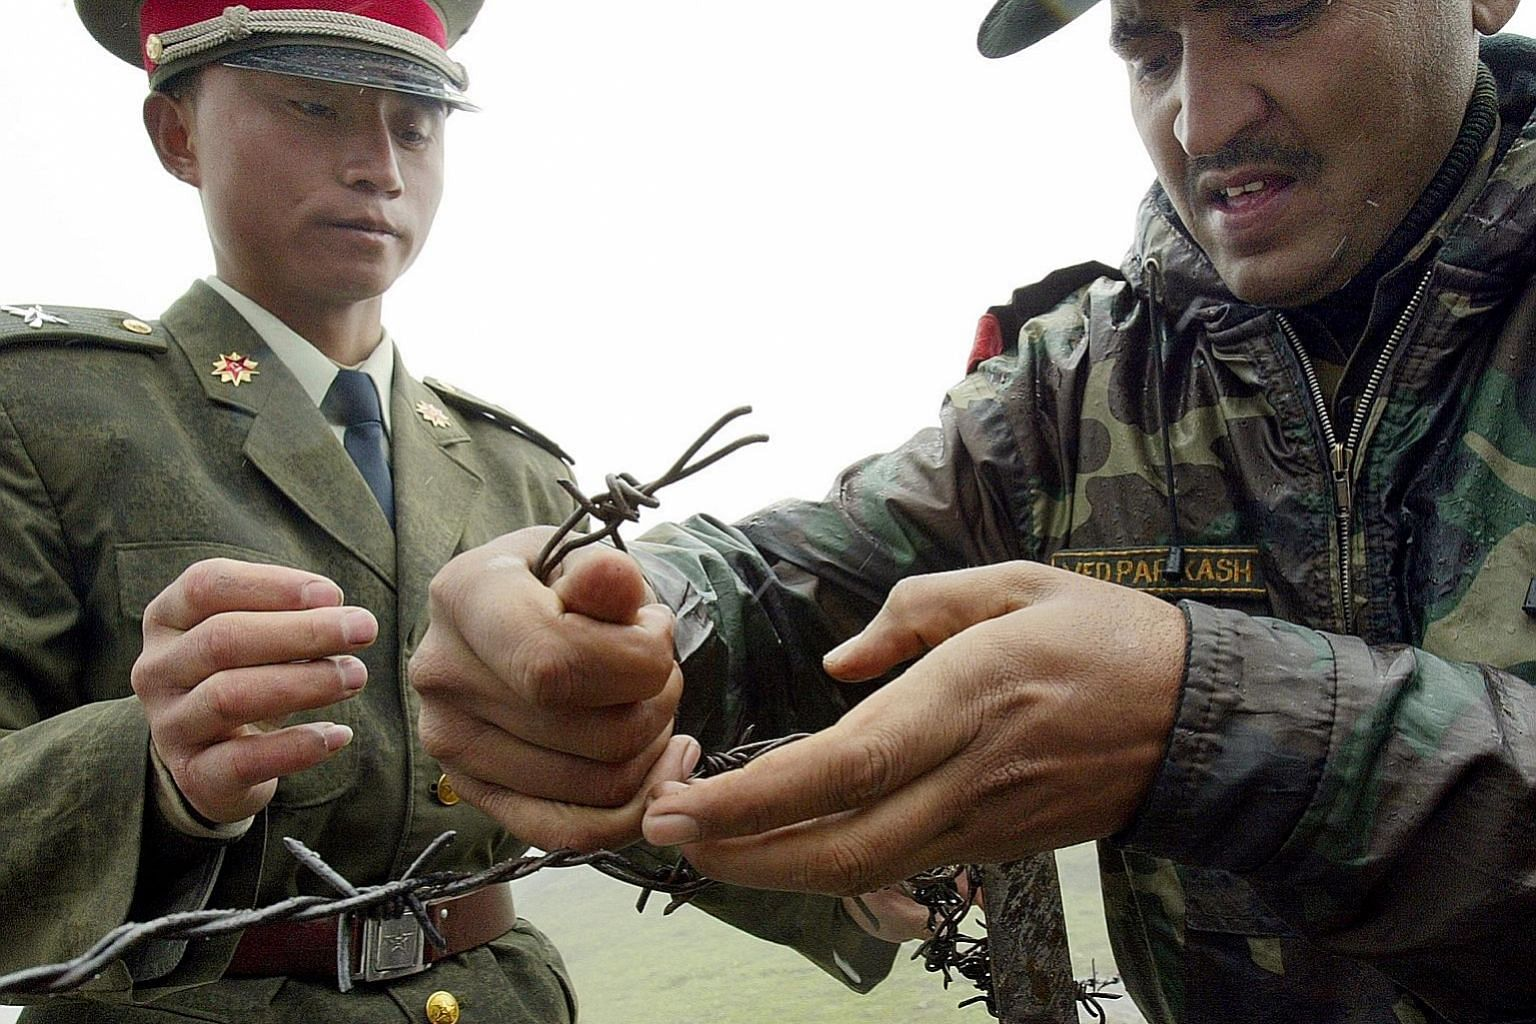 A Chinese soldier and an Indian soldier fixing a barbed-wire fence at the Nathu La border crossing between India and China in India's north-eastern Sikkim state in 2006. China and India have disputes in several areas along a 4,000km border, including